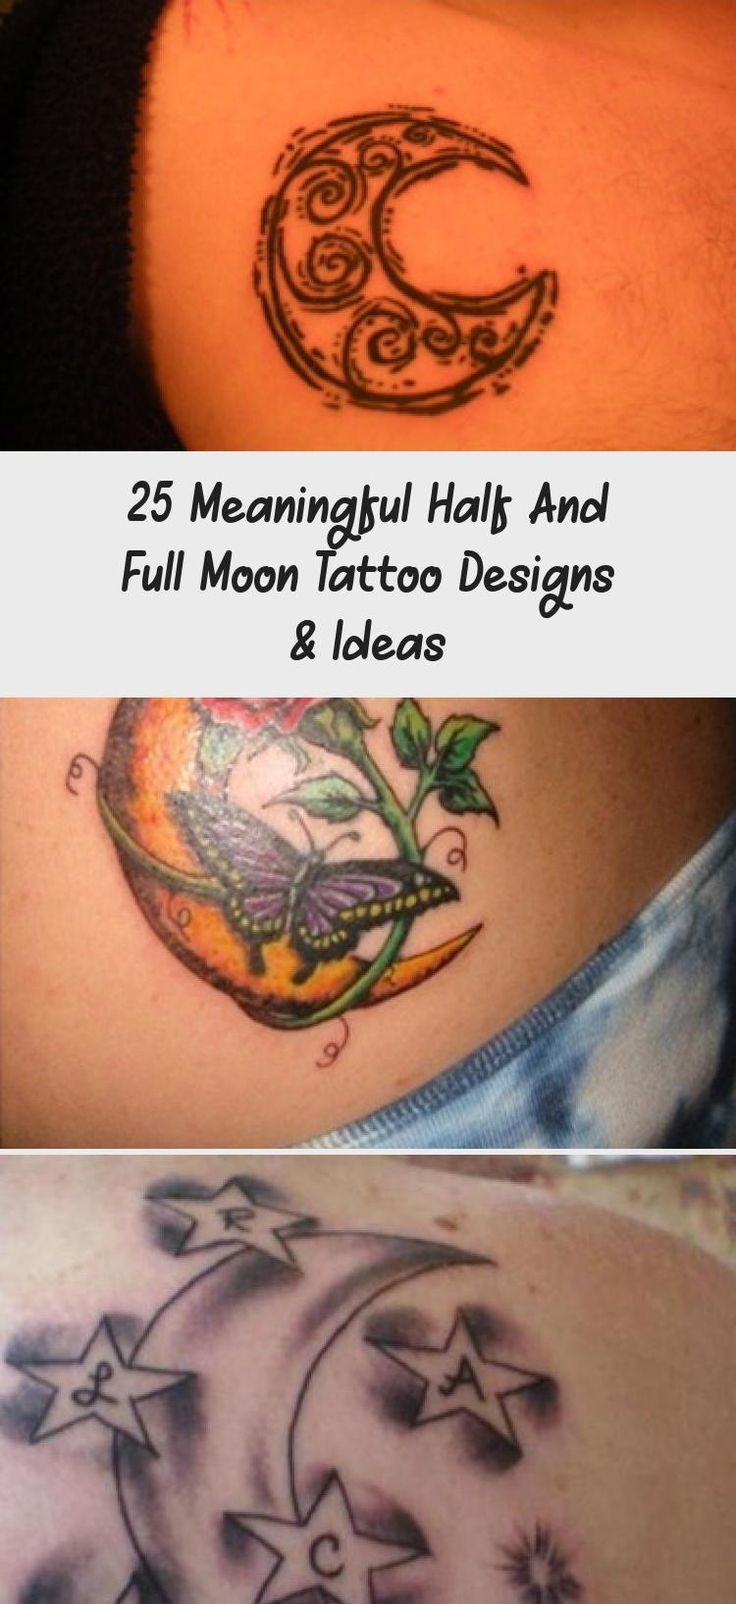 25 Meaningful Half And Full Moon Tattoo Designs & Ideas